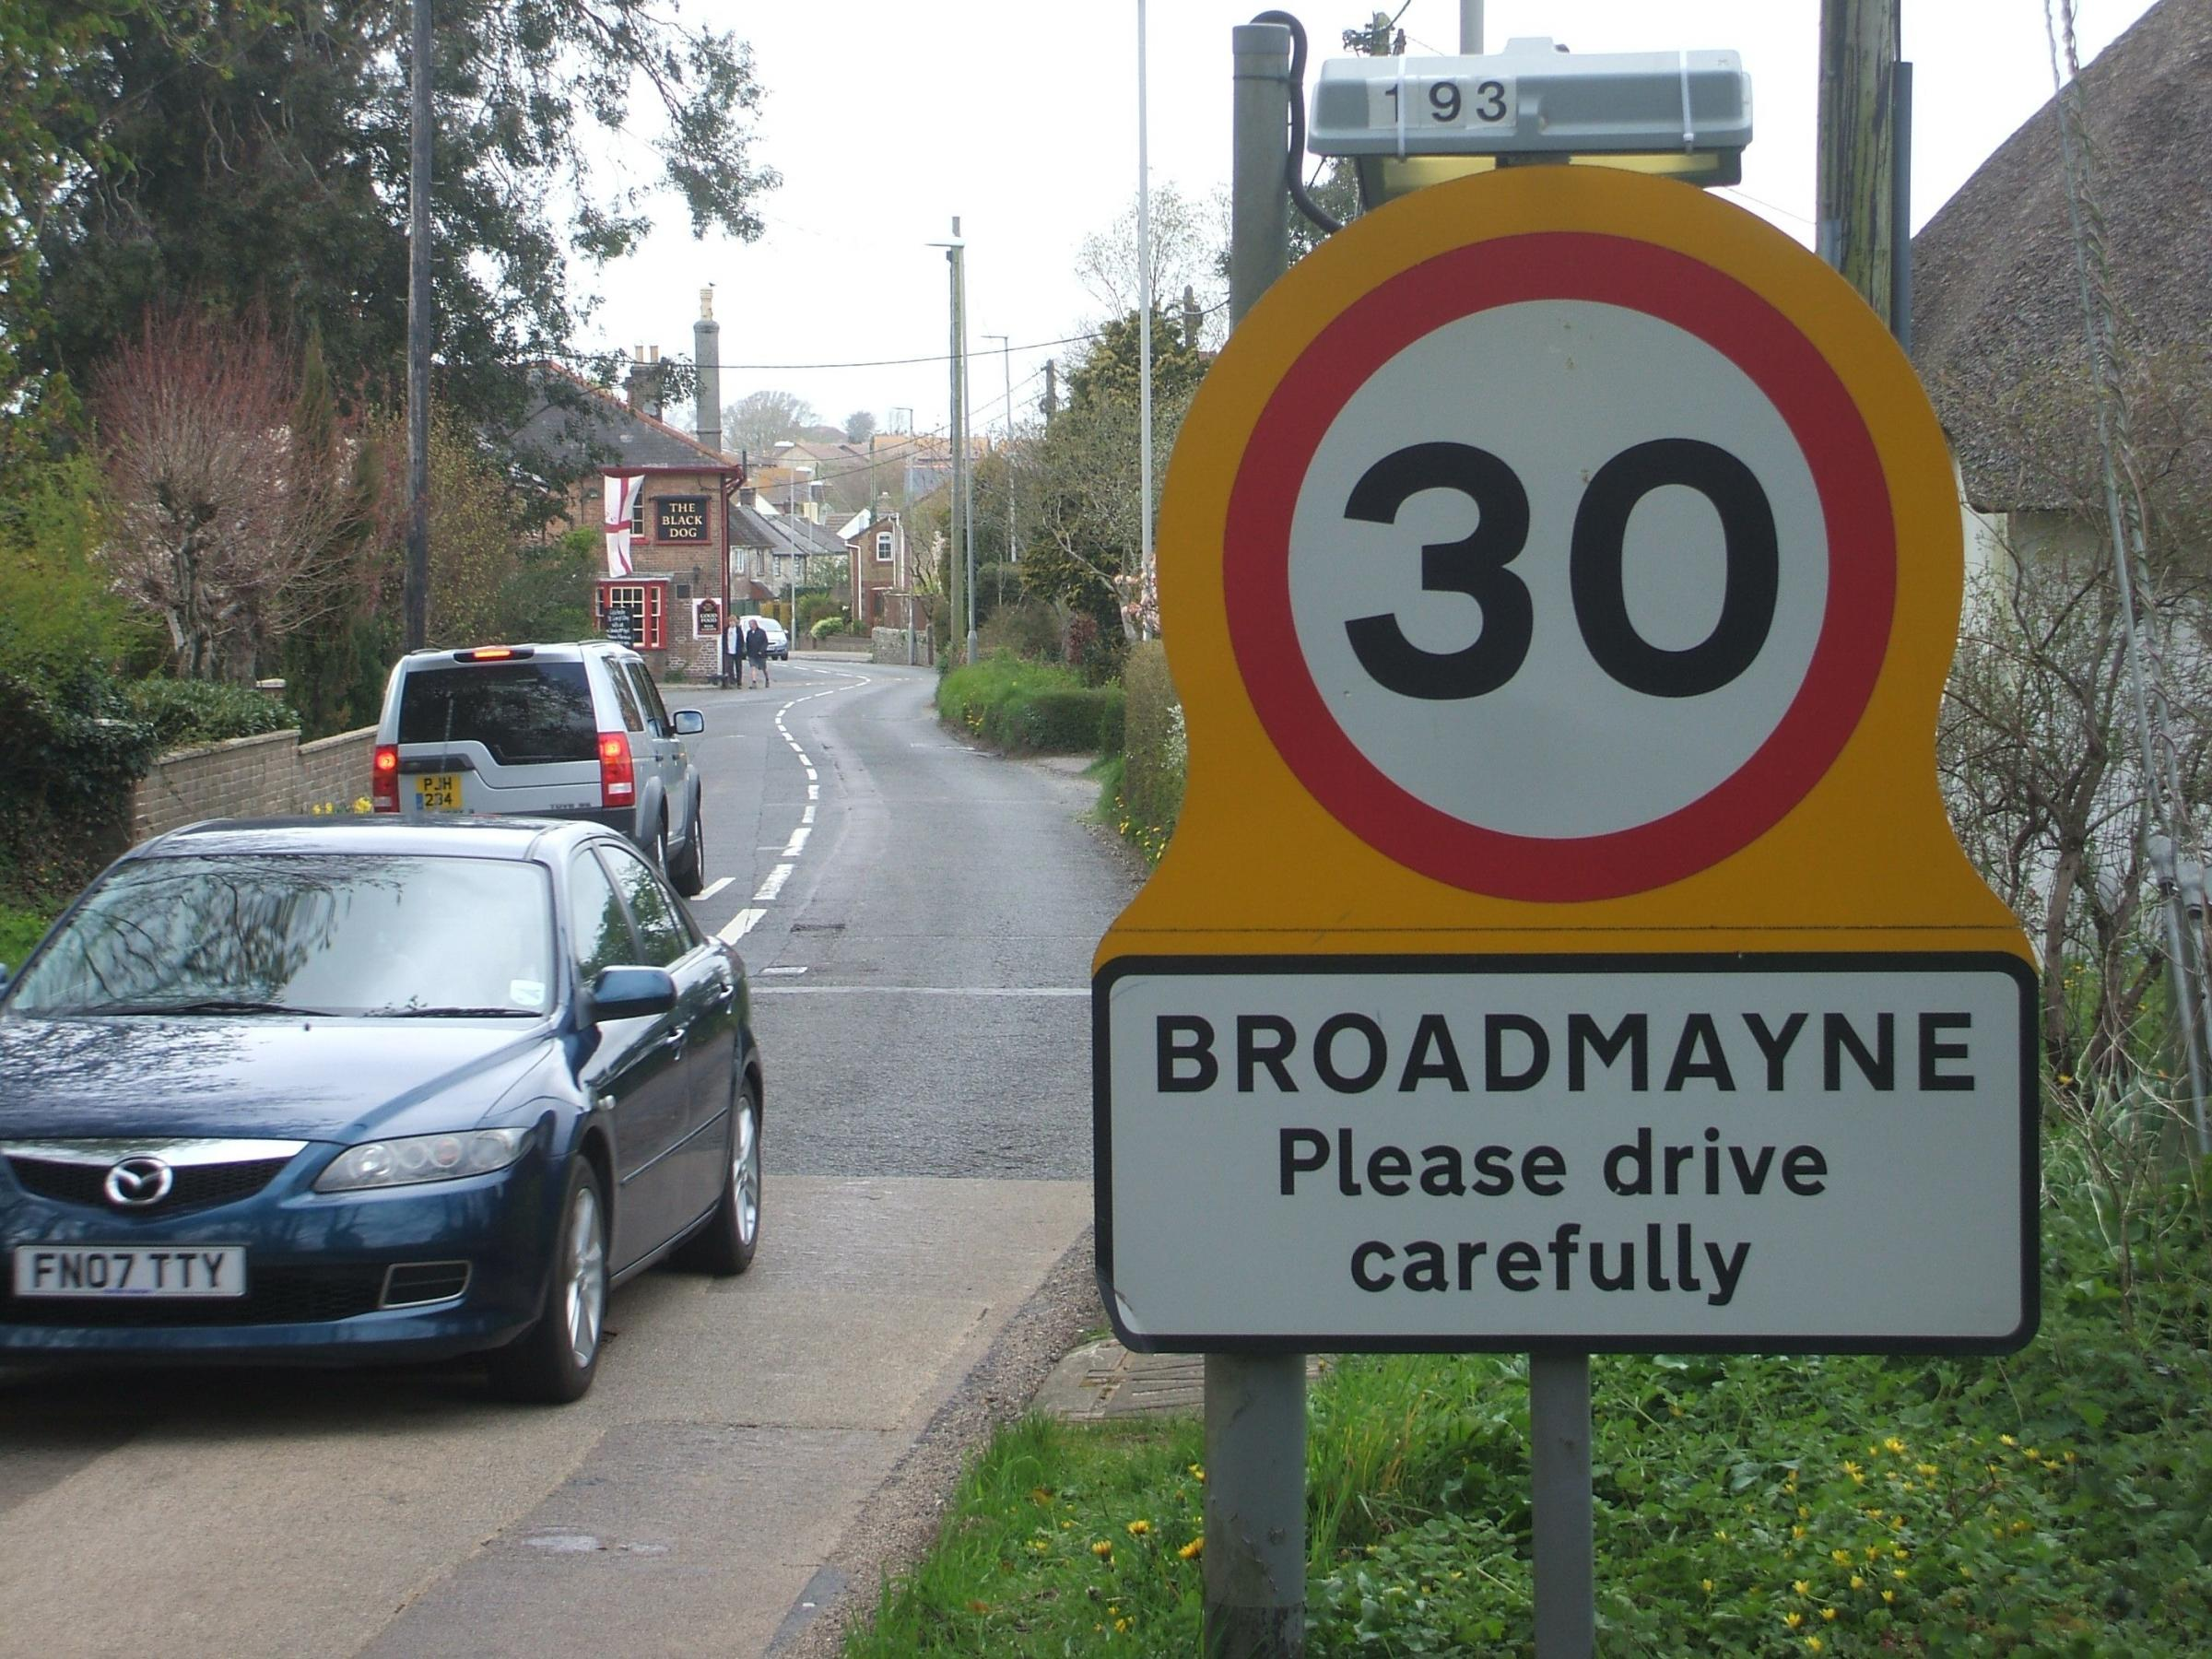 Planning matters in Broadmayne